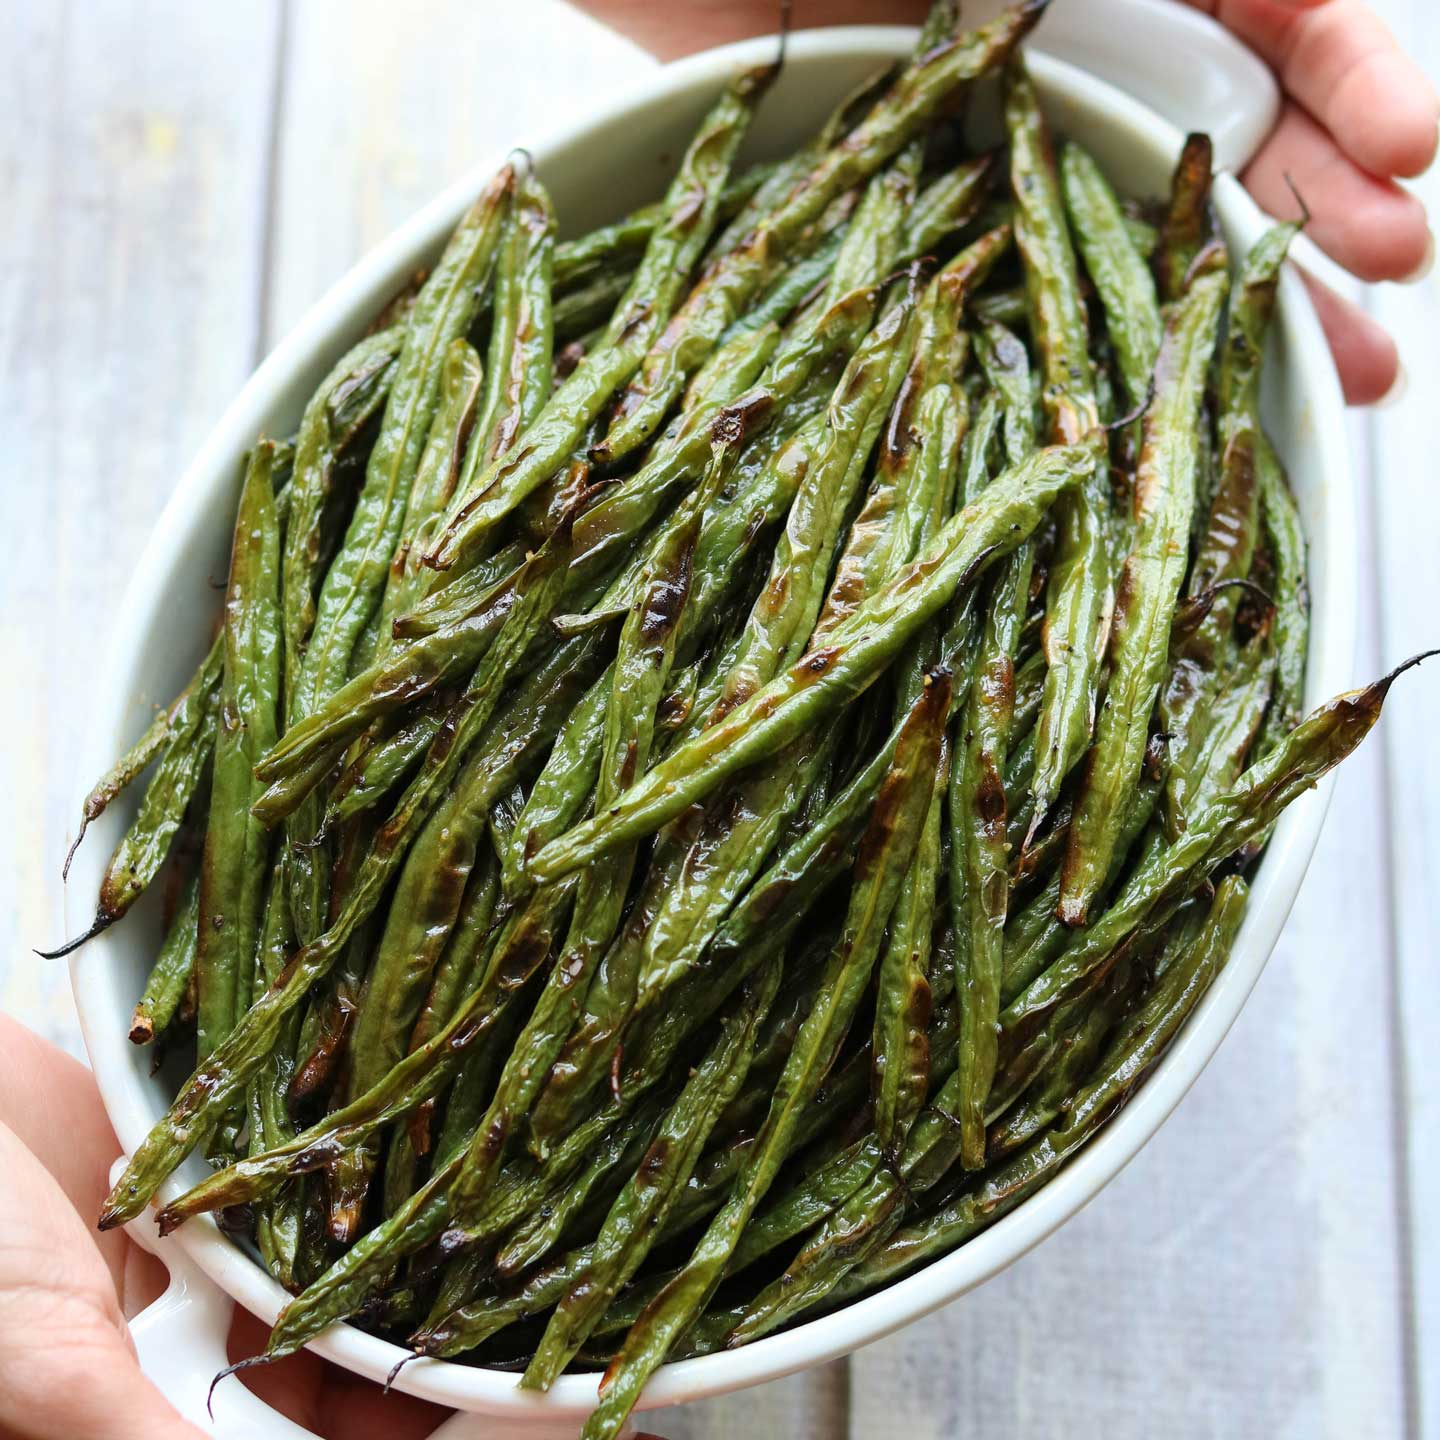 Blistered Green Beans are quick and easy … the ultimate in simplicity. Yet the magic of roasting means they don't taste simple at all! You'll be surprised how complex and delicious they are!